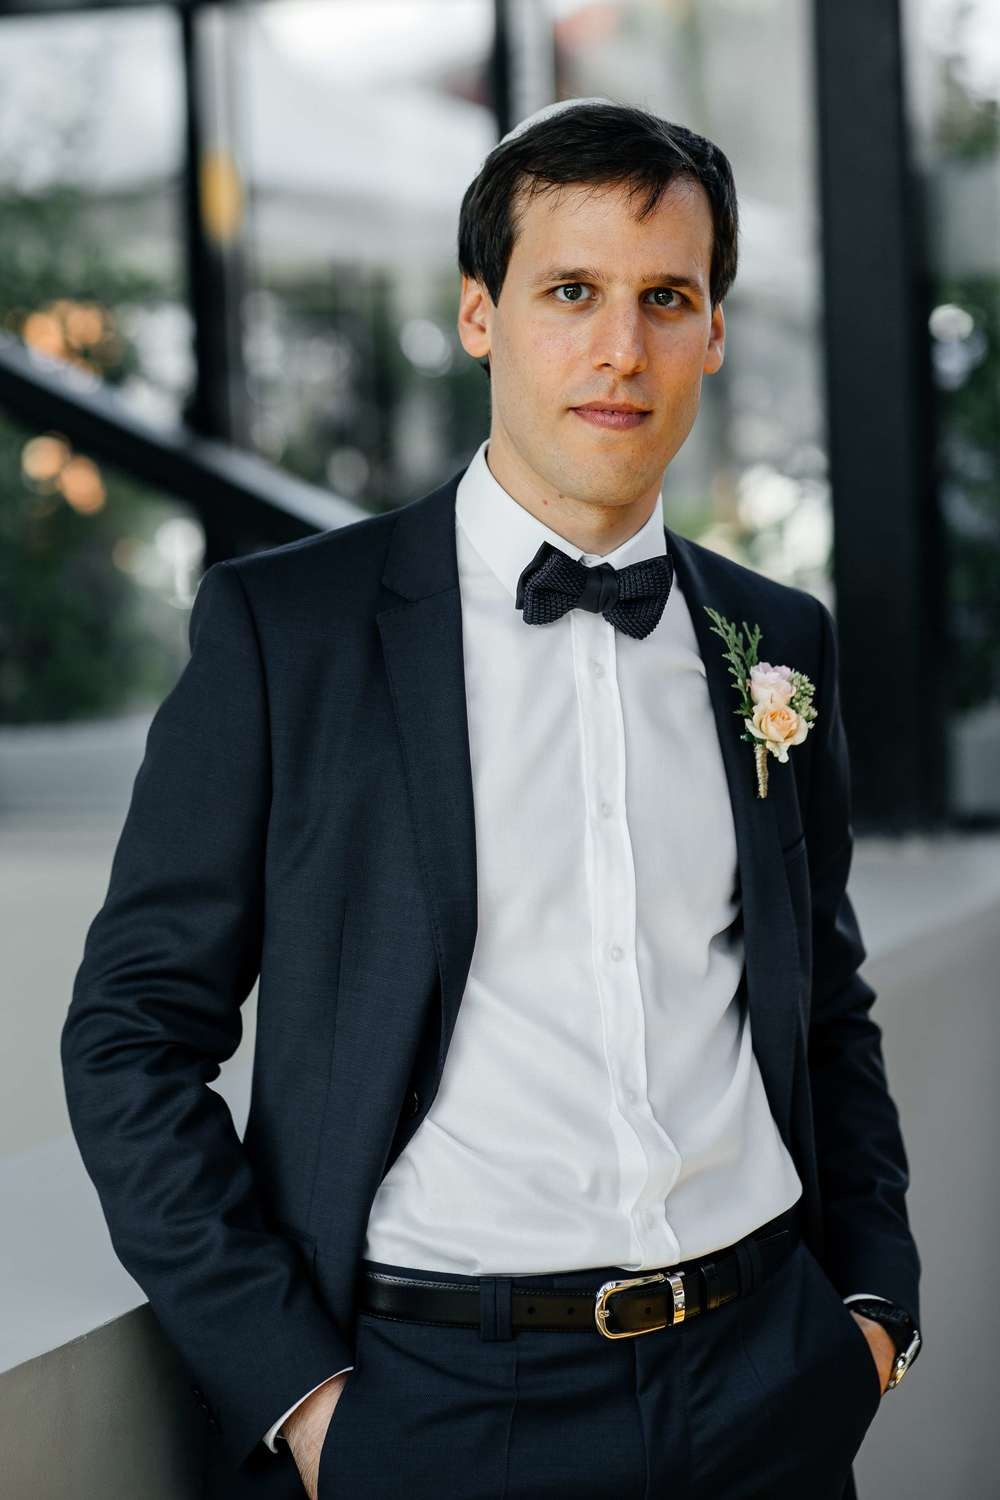 relaxed tuxedo for the groom